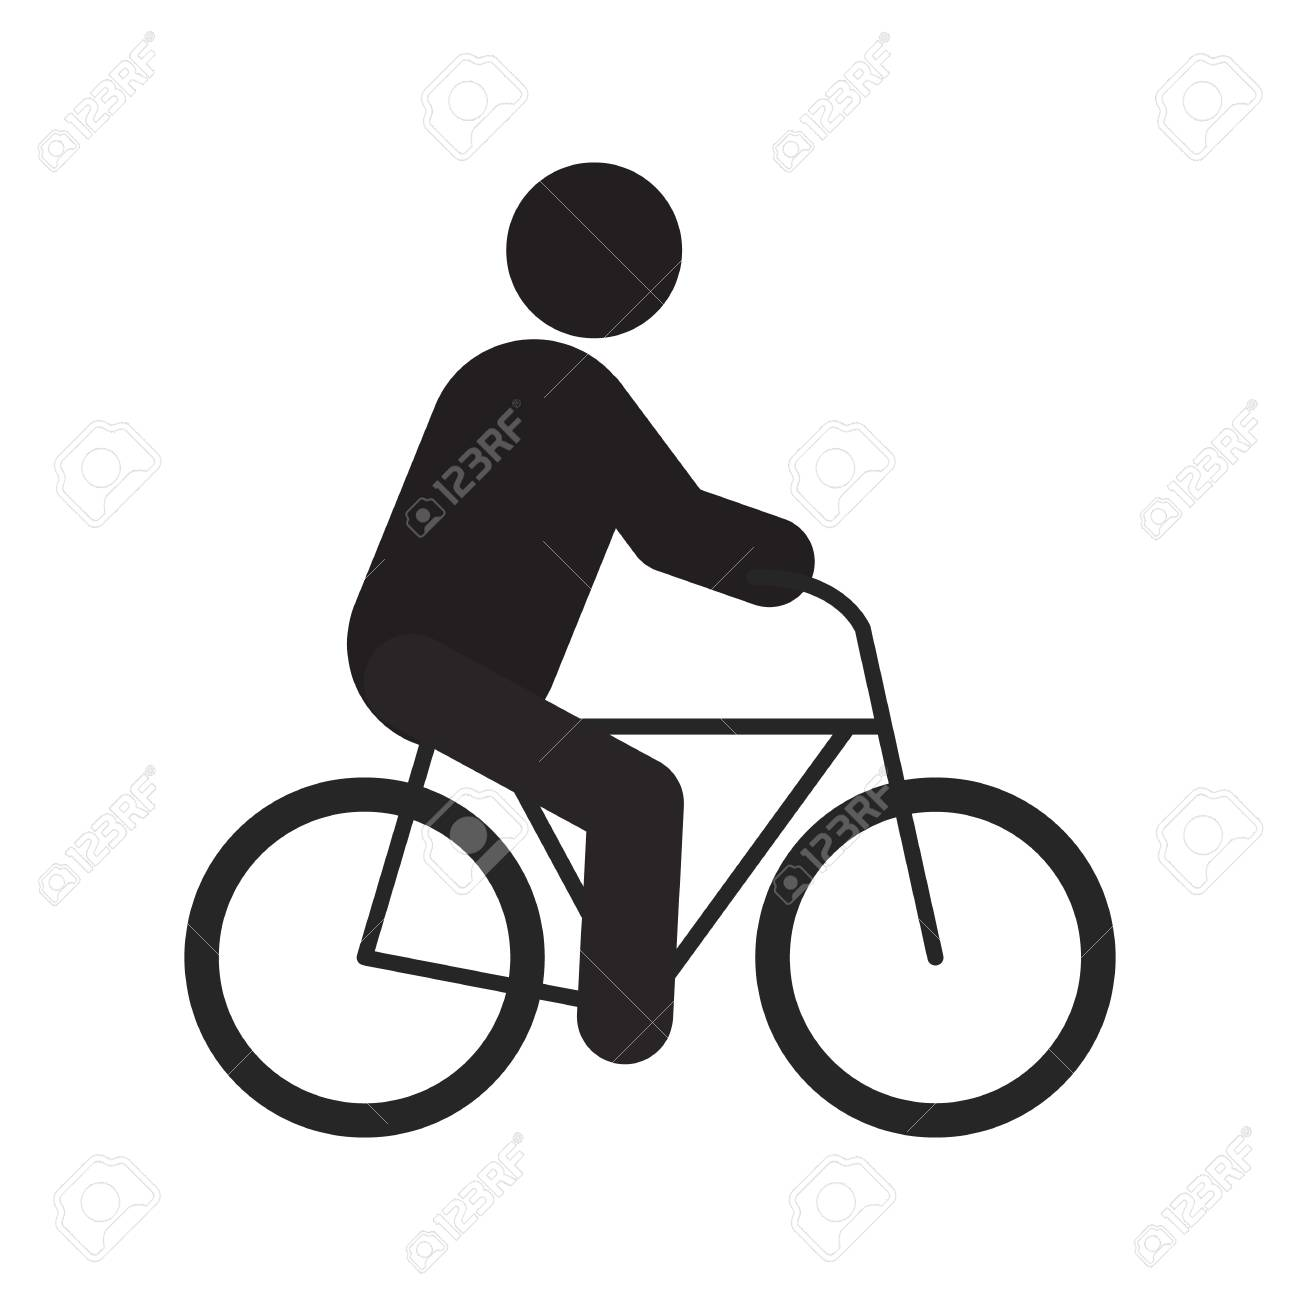 Man riding bike silhouette icon. Sport. Isolated vector illustration.